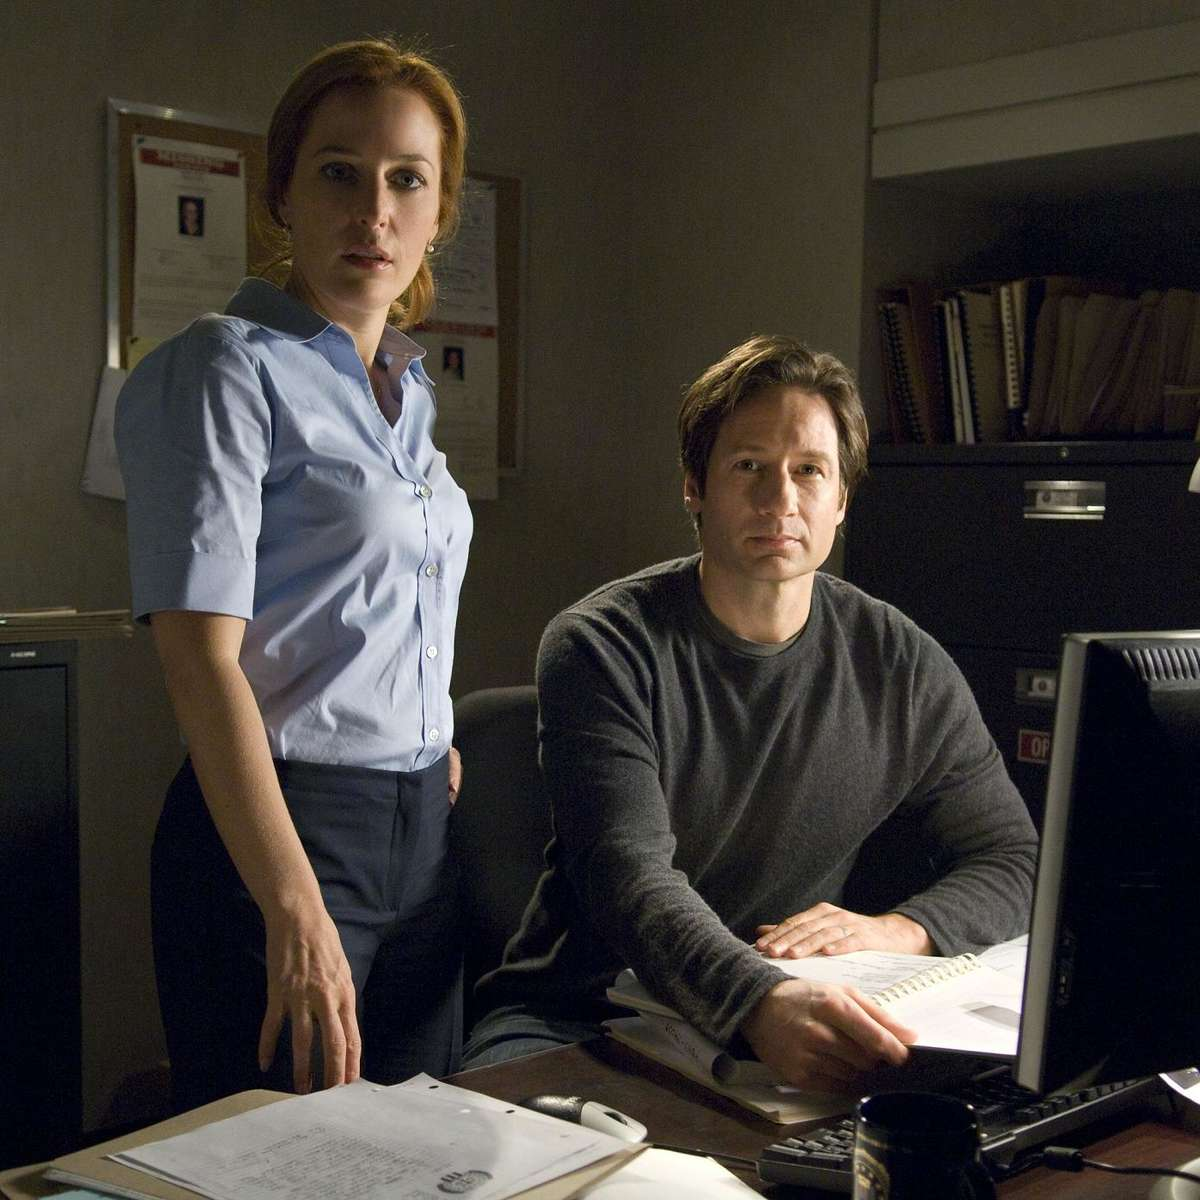 xfiles-i-want-to-believe-promoshoot.jpg